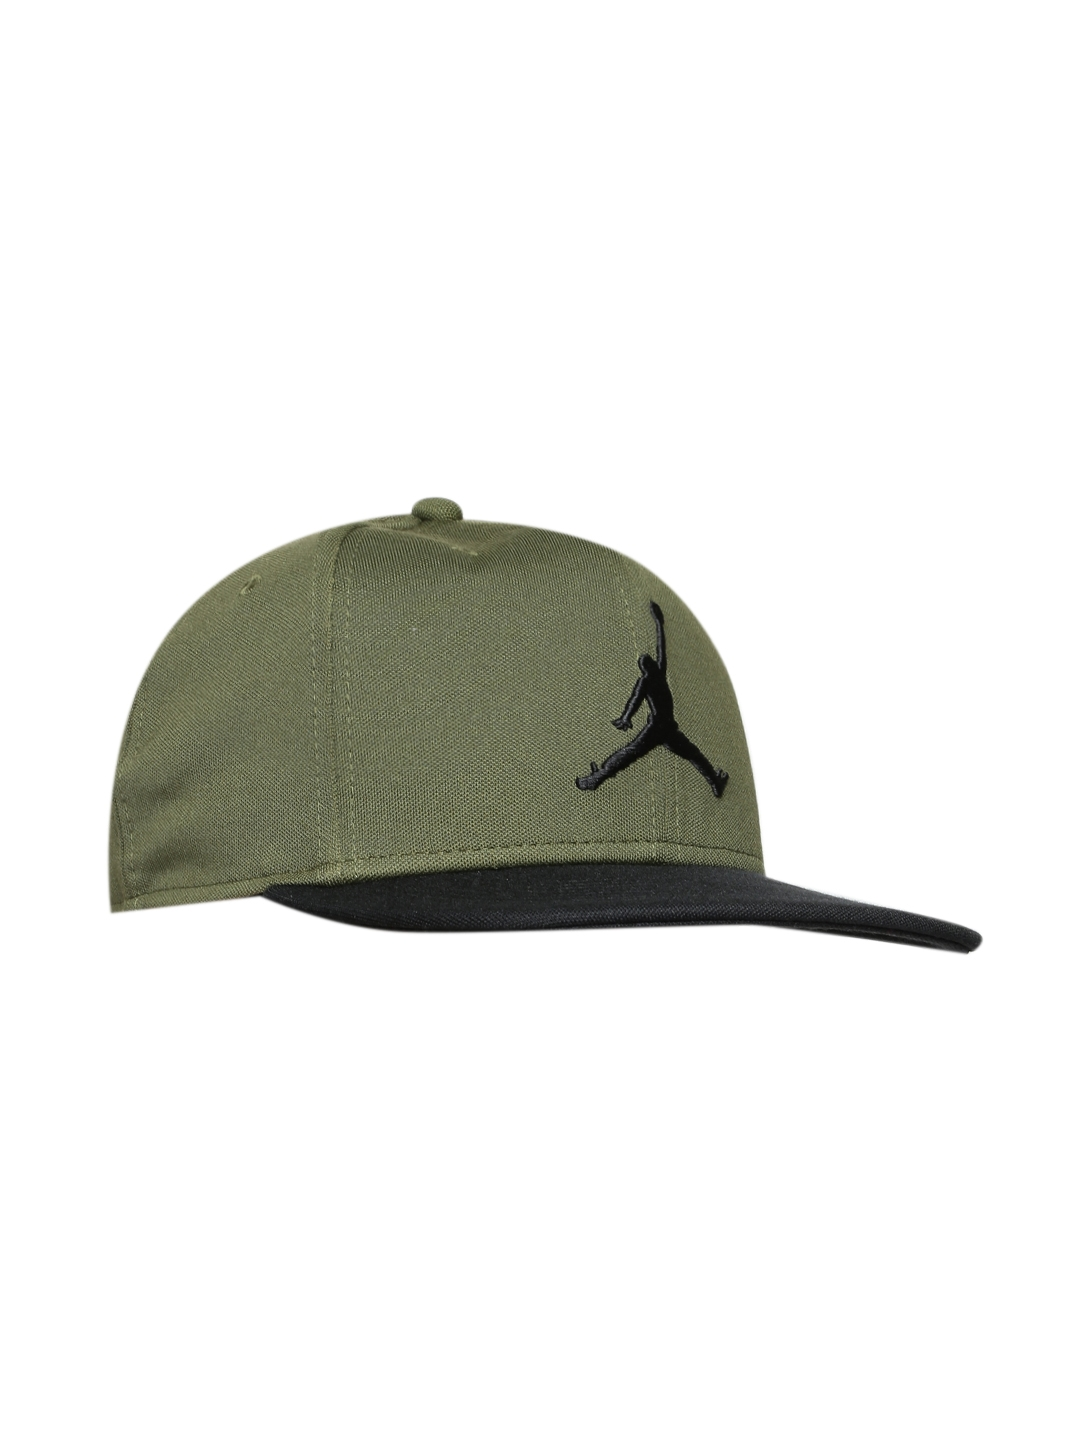 e361834d80d Buy Nike Unisex Olive Green JORDAN JUMPMAN Snapback Cap - Caps for ...